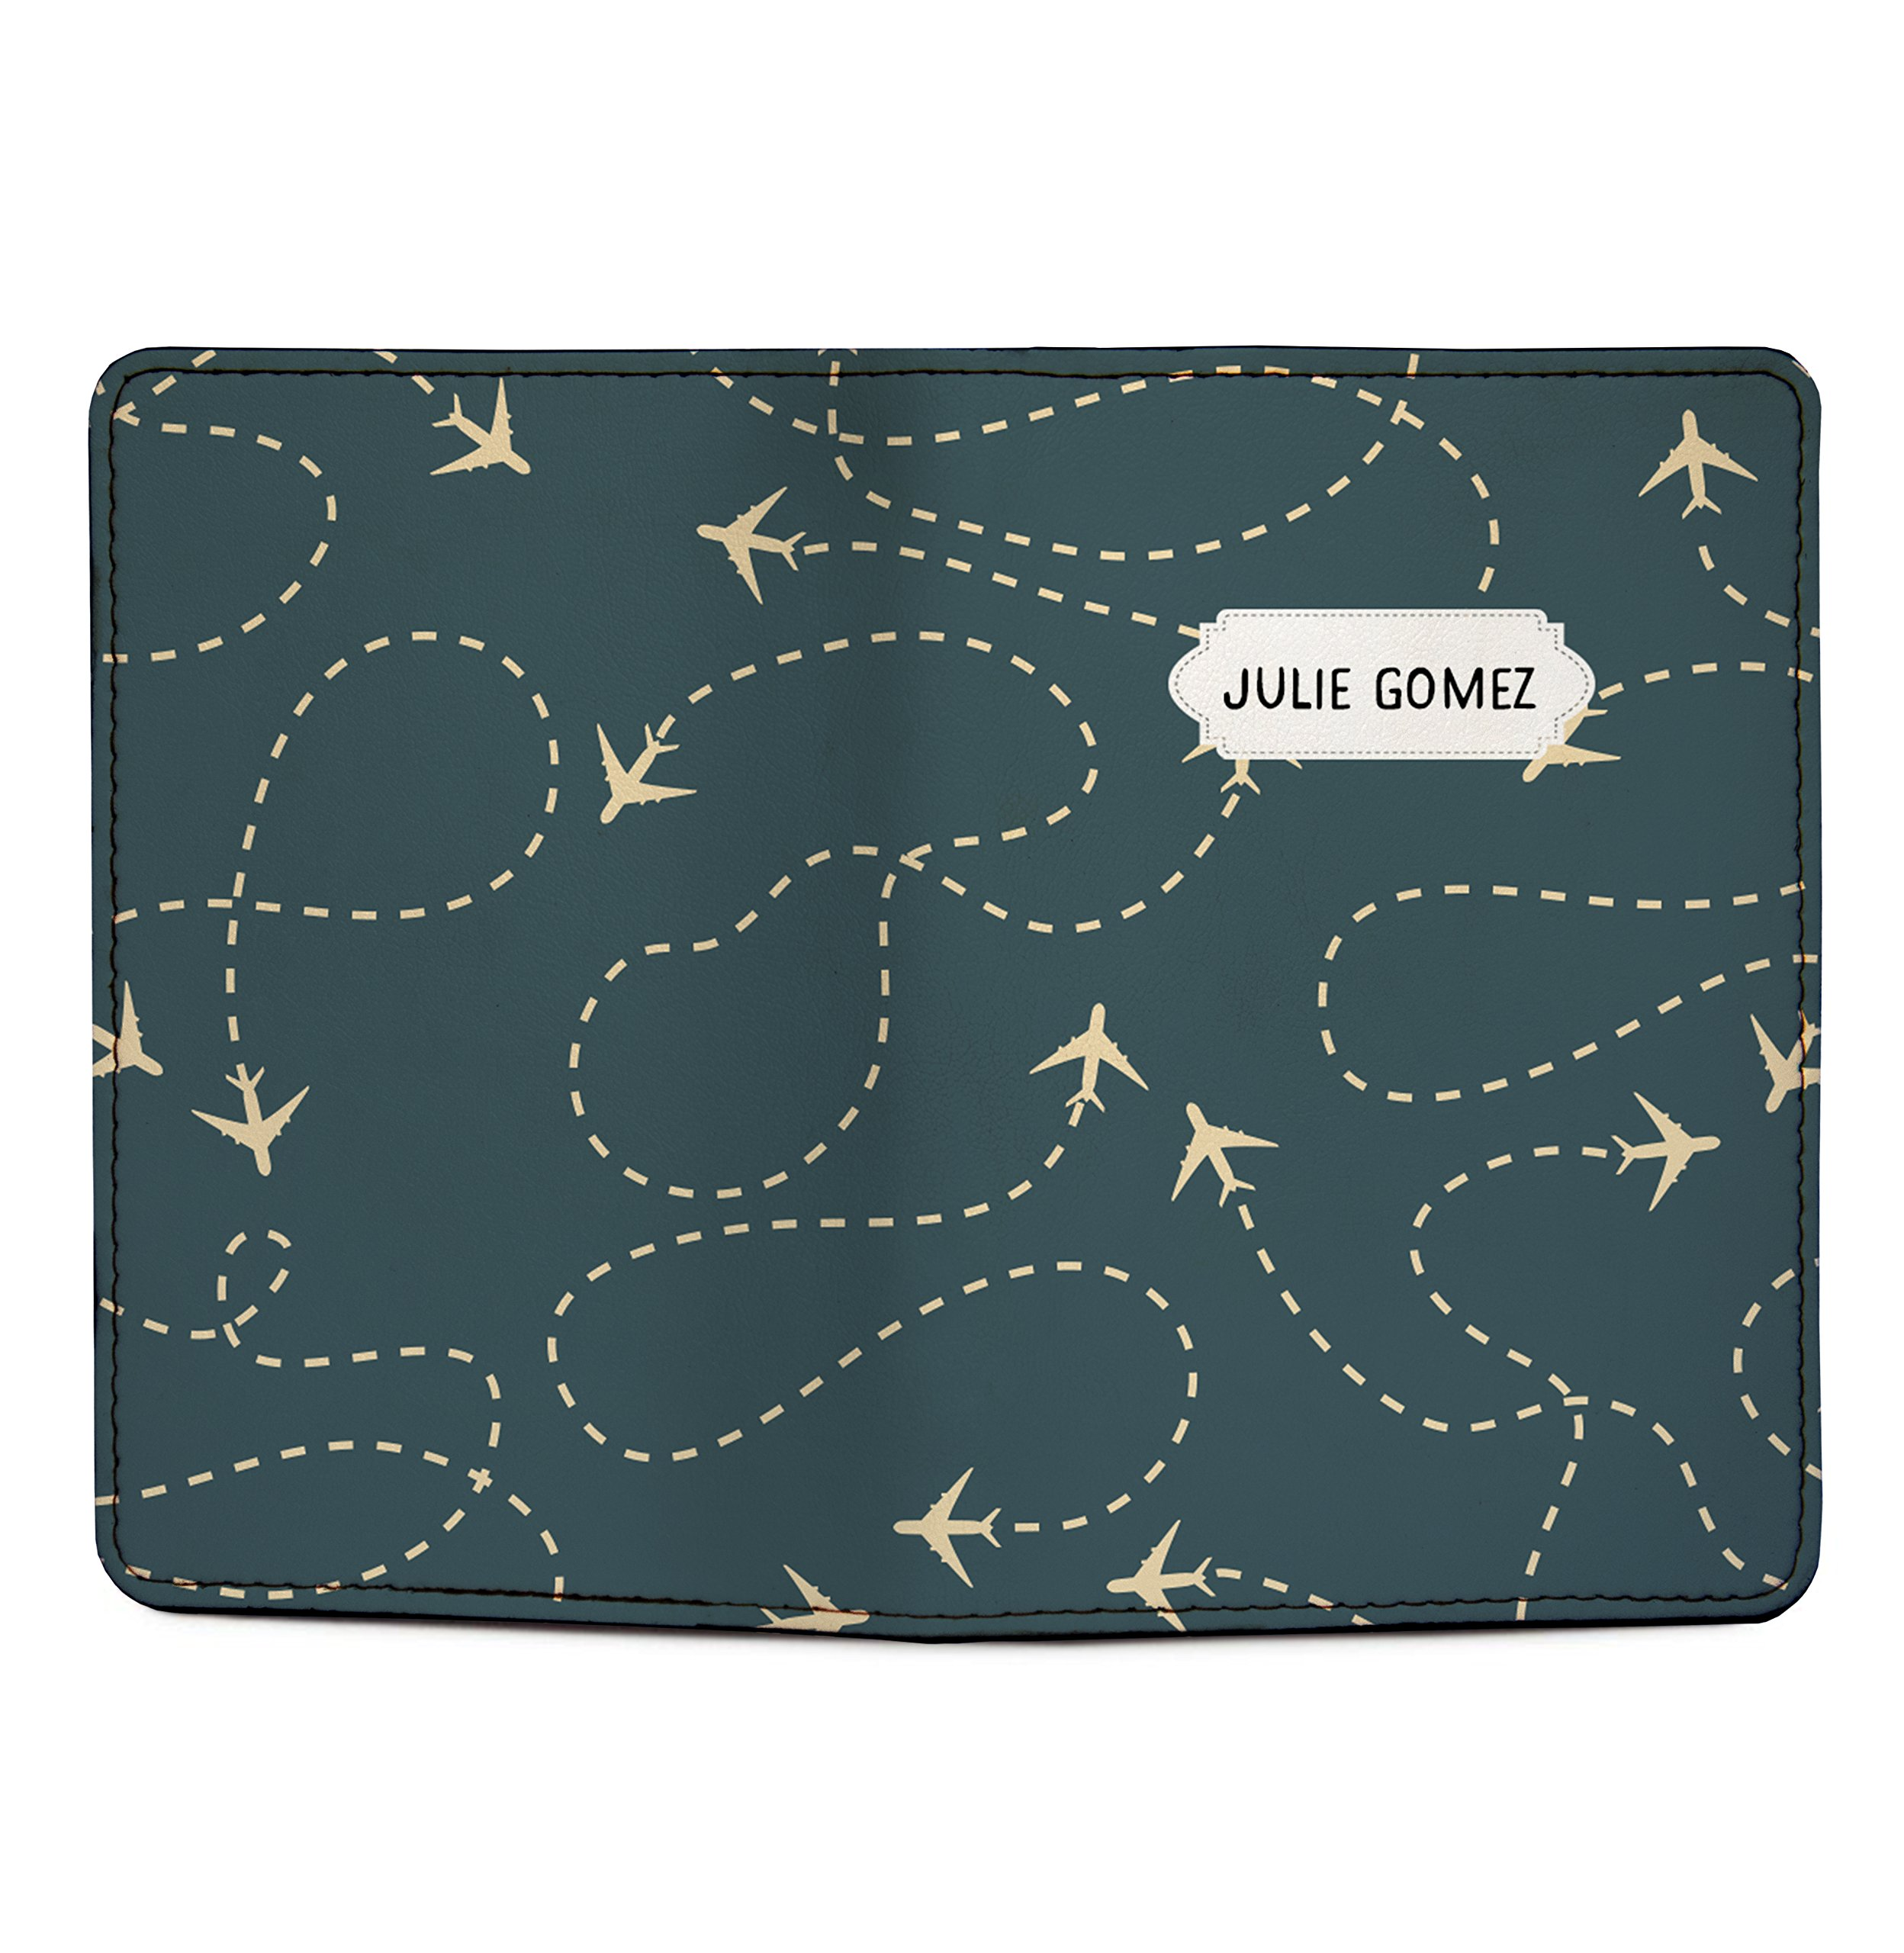 Customized RFID Blocking Leather Passport Holder Airplanes by With Love From Julie (Image #3)